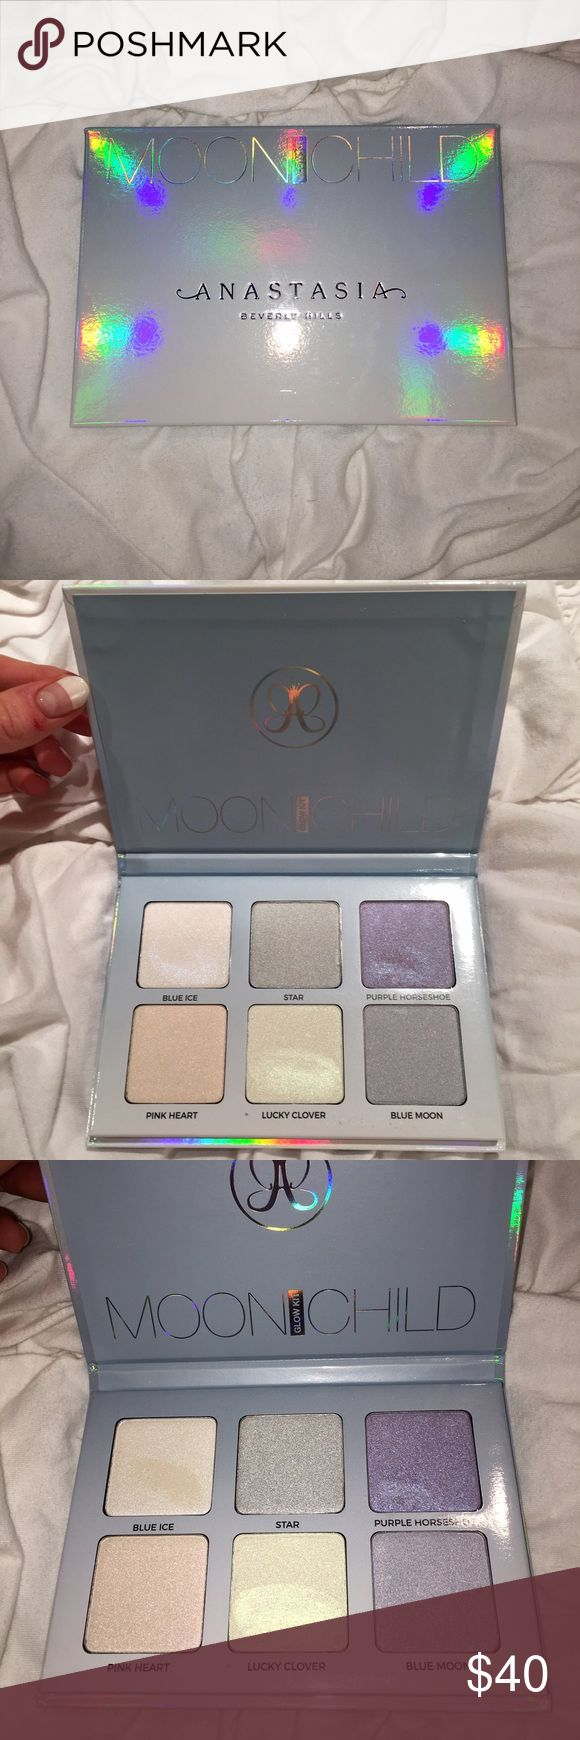 ANASTASIA MOON CHILD PALETTE!!! ANASTASIA MOON CHILD PALETTE!!! Brand new - tested 3 of the 6 colors once! Anastasia Beverly Hills Makeup